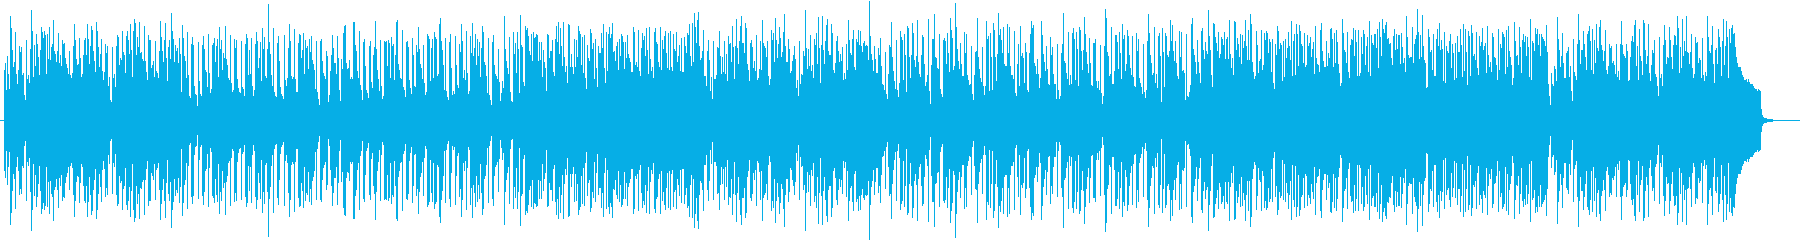 A fashionable and cute song's reproduced waveform